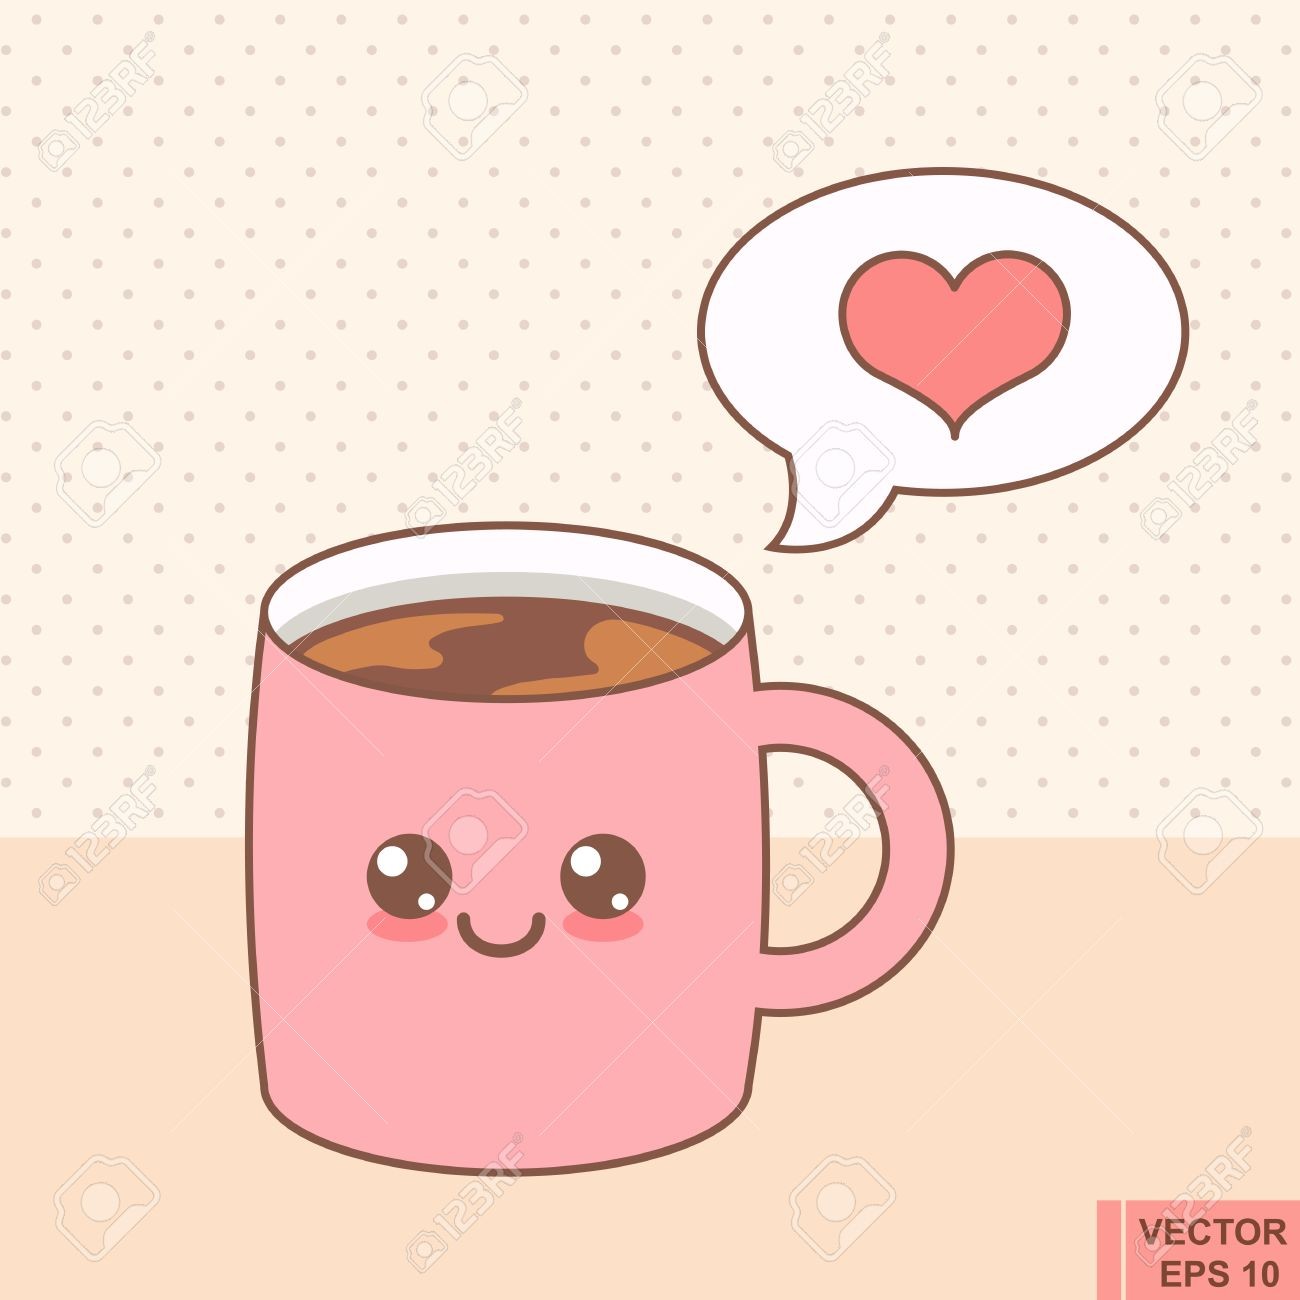 Cup Emoji With Cheeks And Eyes Colored Beautiful Doodle Cup Royalty Free Cliparts Vectors And Stock Illustration Image 66543504